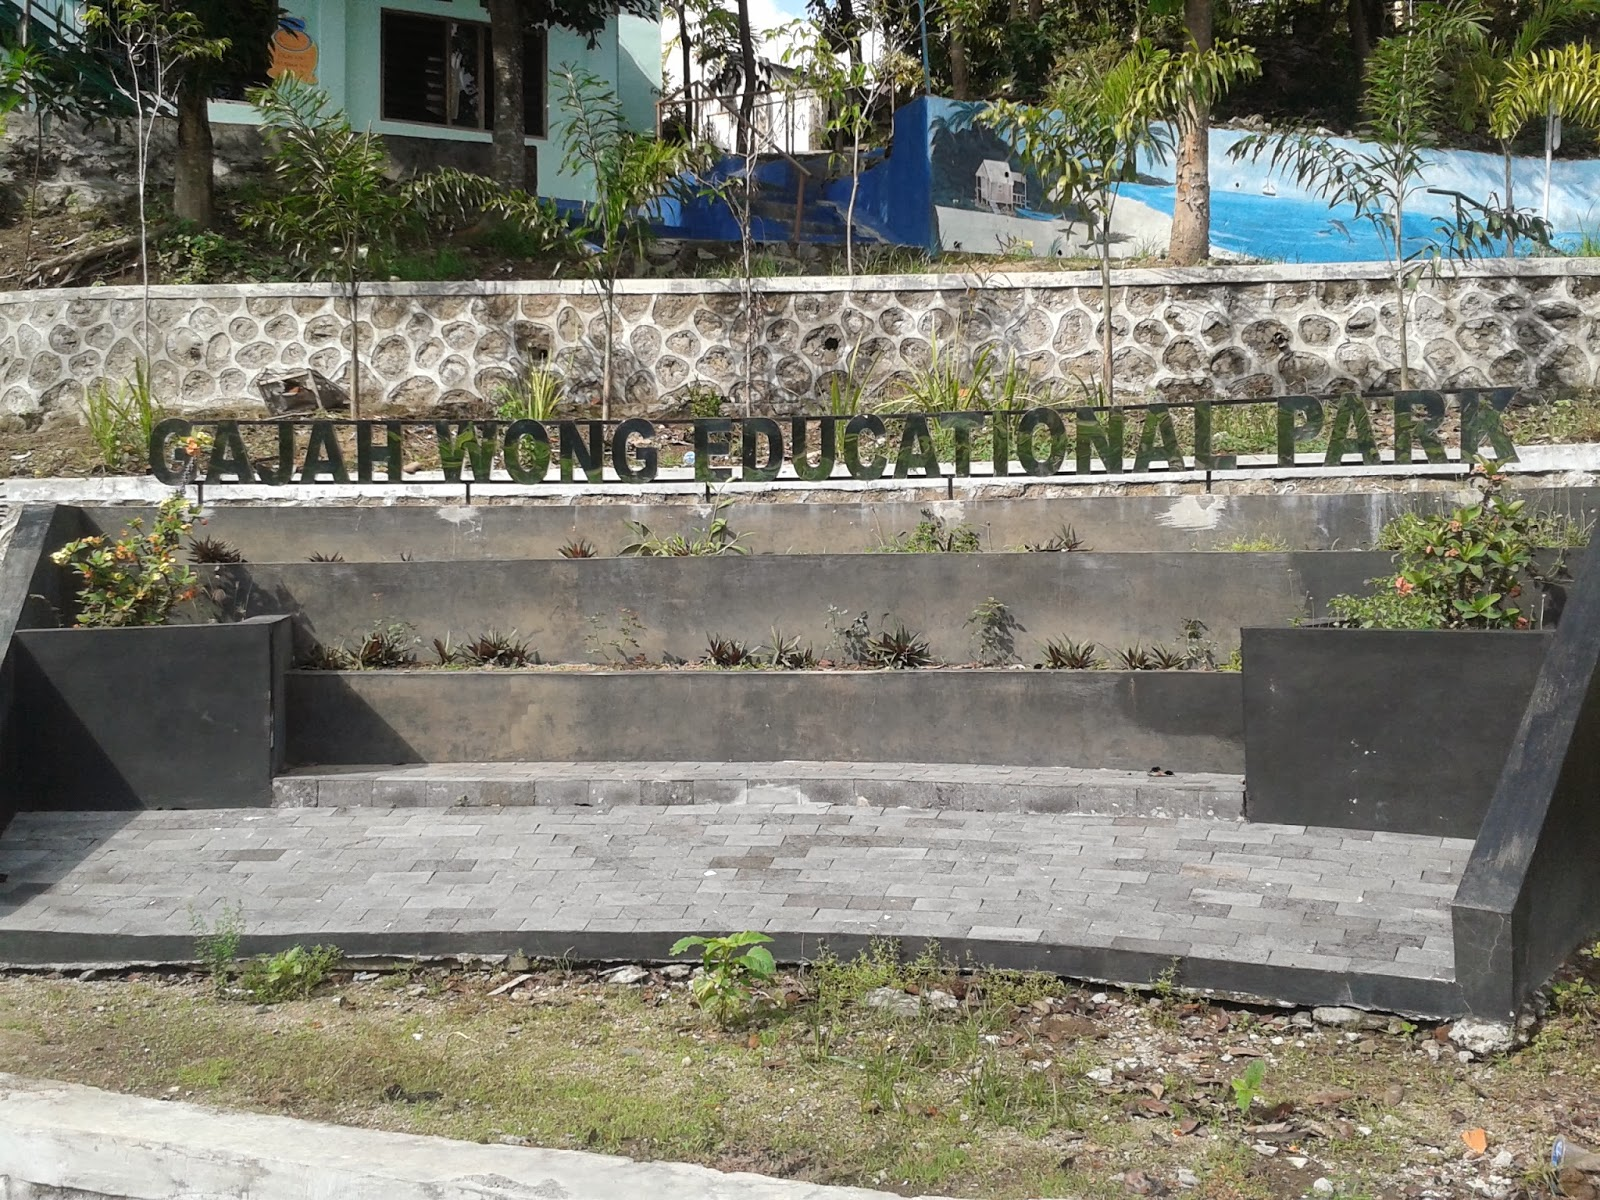 Taman Gajah Wong Educational Park